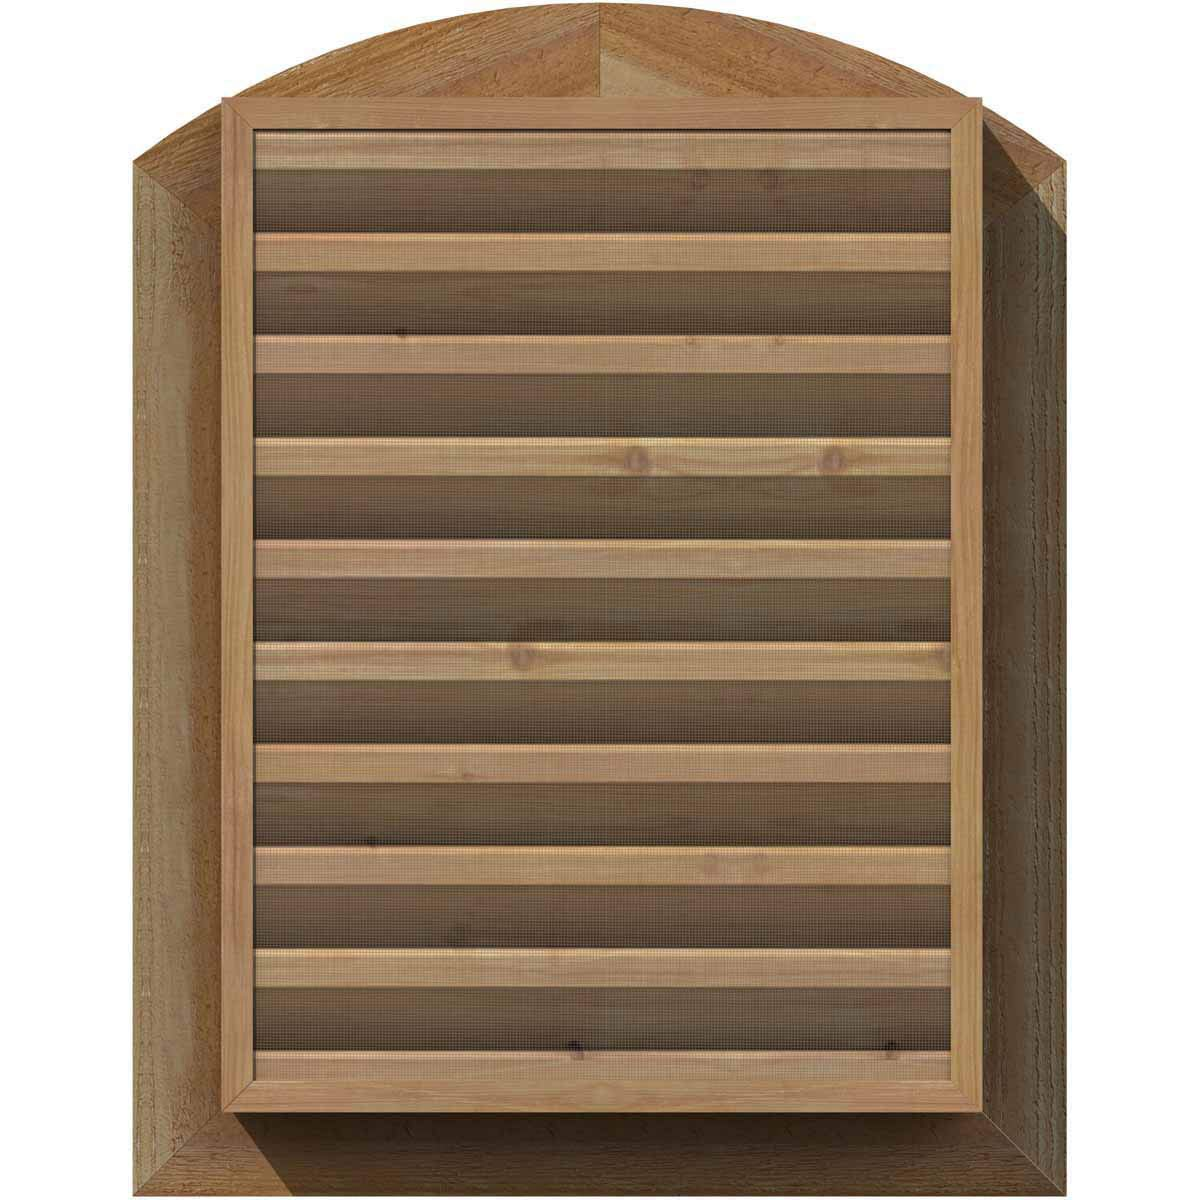 Ekena Millwork GVWOC18X1801SFPWR Primed Functional and Smooth Western Red Cedar 18 Width x 18 Height Octagonal Gable Vent with 1 x 4 Flat Trim Frame